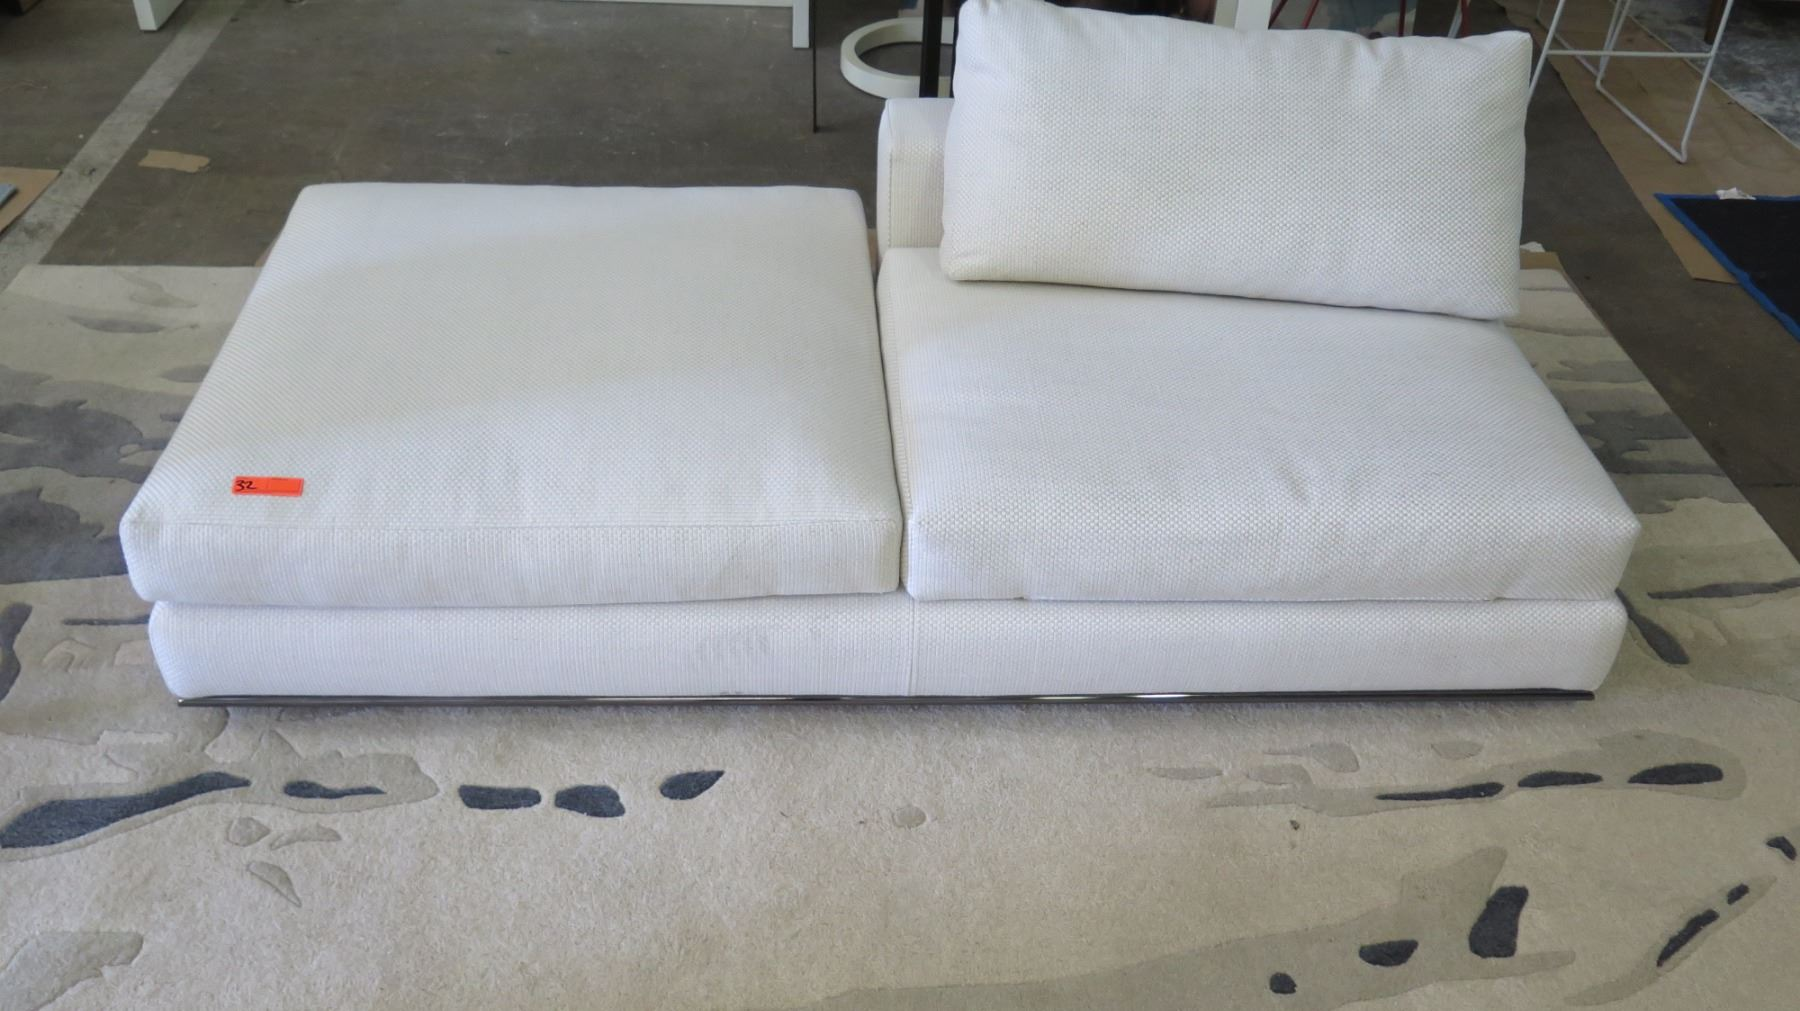 Super White Minotti Sofa Lounger W Cushion Woven Textural Caraccident5 Cool Chair Designs And Ideas Caraccident5Info